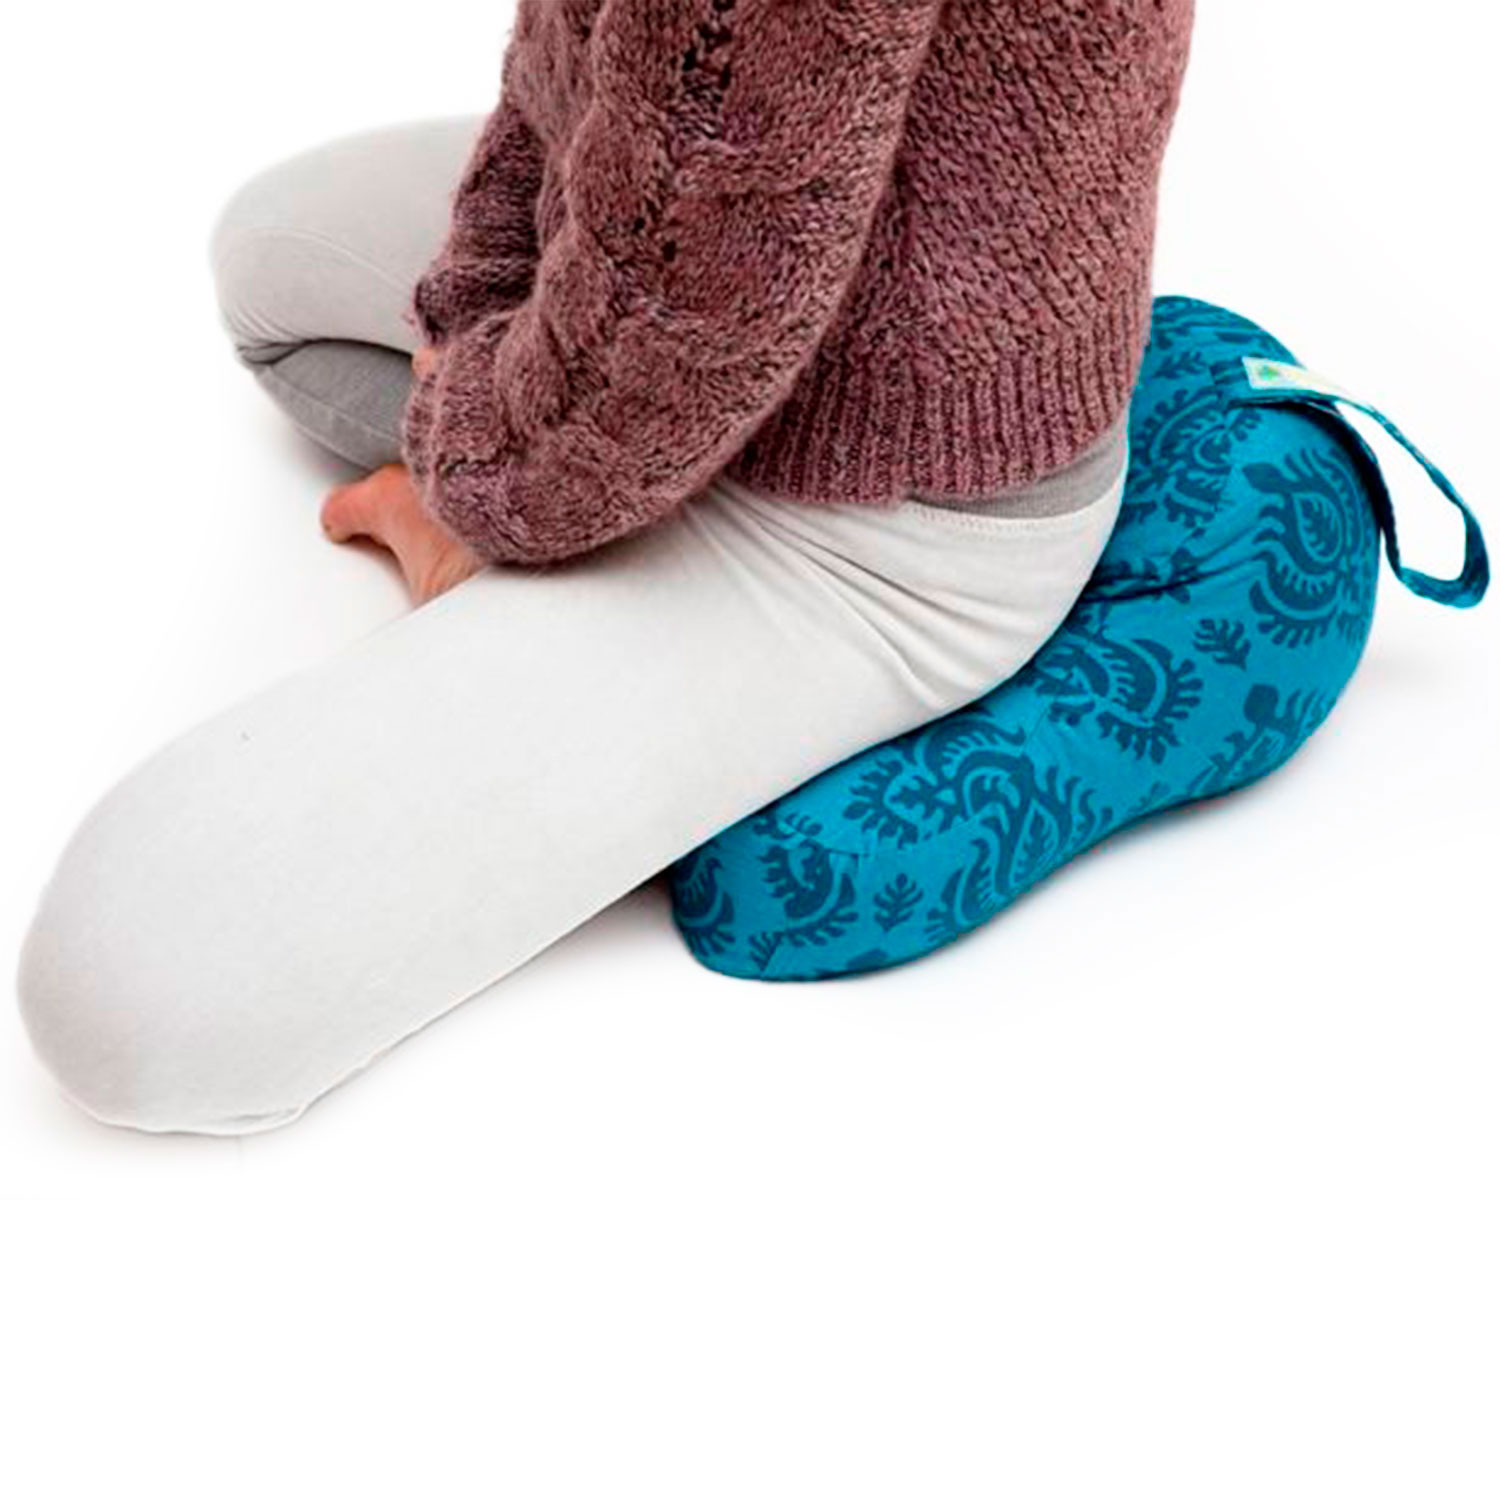 zafu cushion combo sitting ebay mats canada cushions and picks meditation australia best mat bestn nz wholesale ideas mind uk dharmas buyn one meditationns set unbelievable zoomin